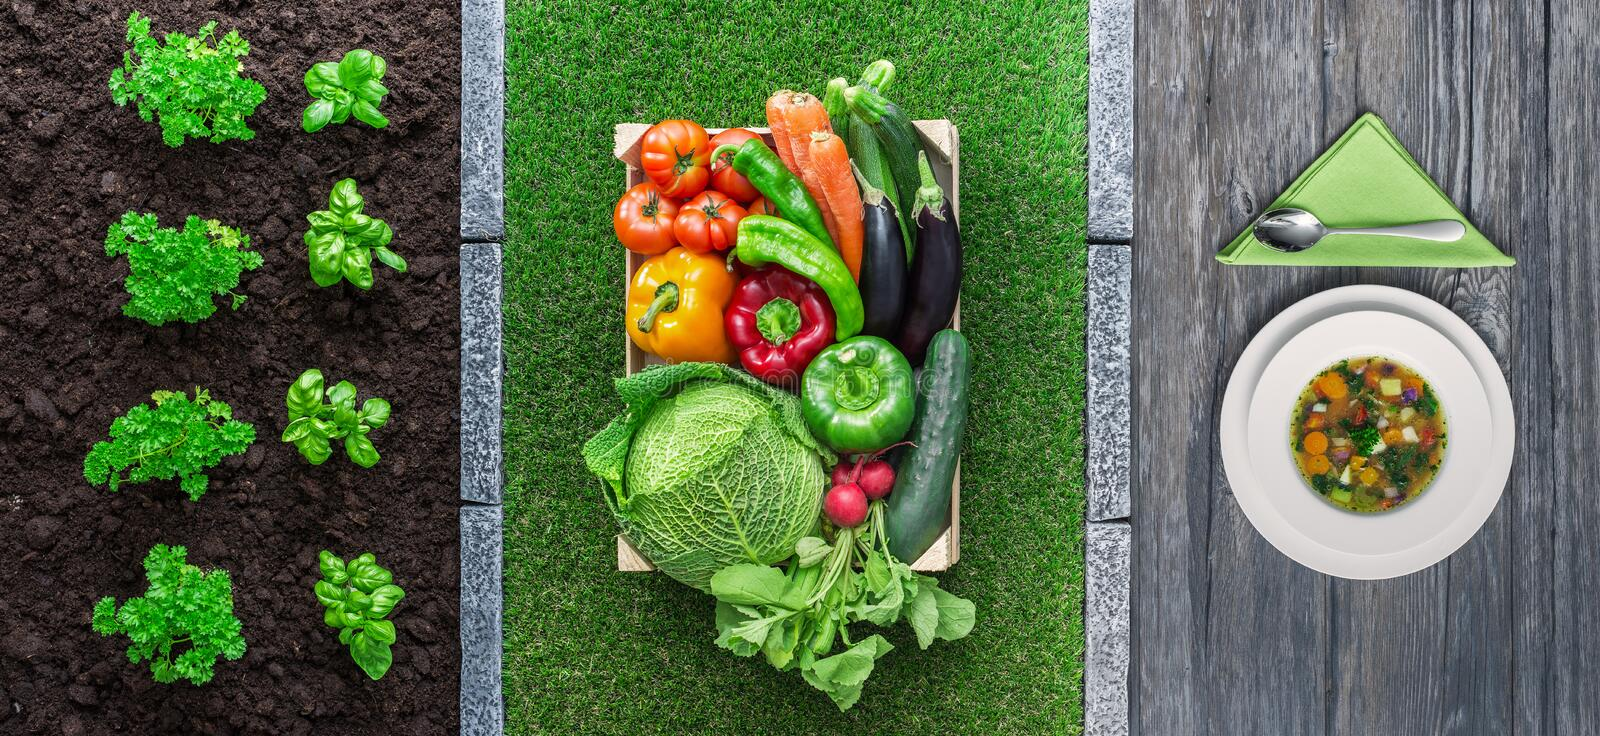 From farm to table royalty free stock image